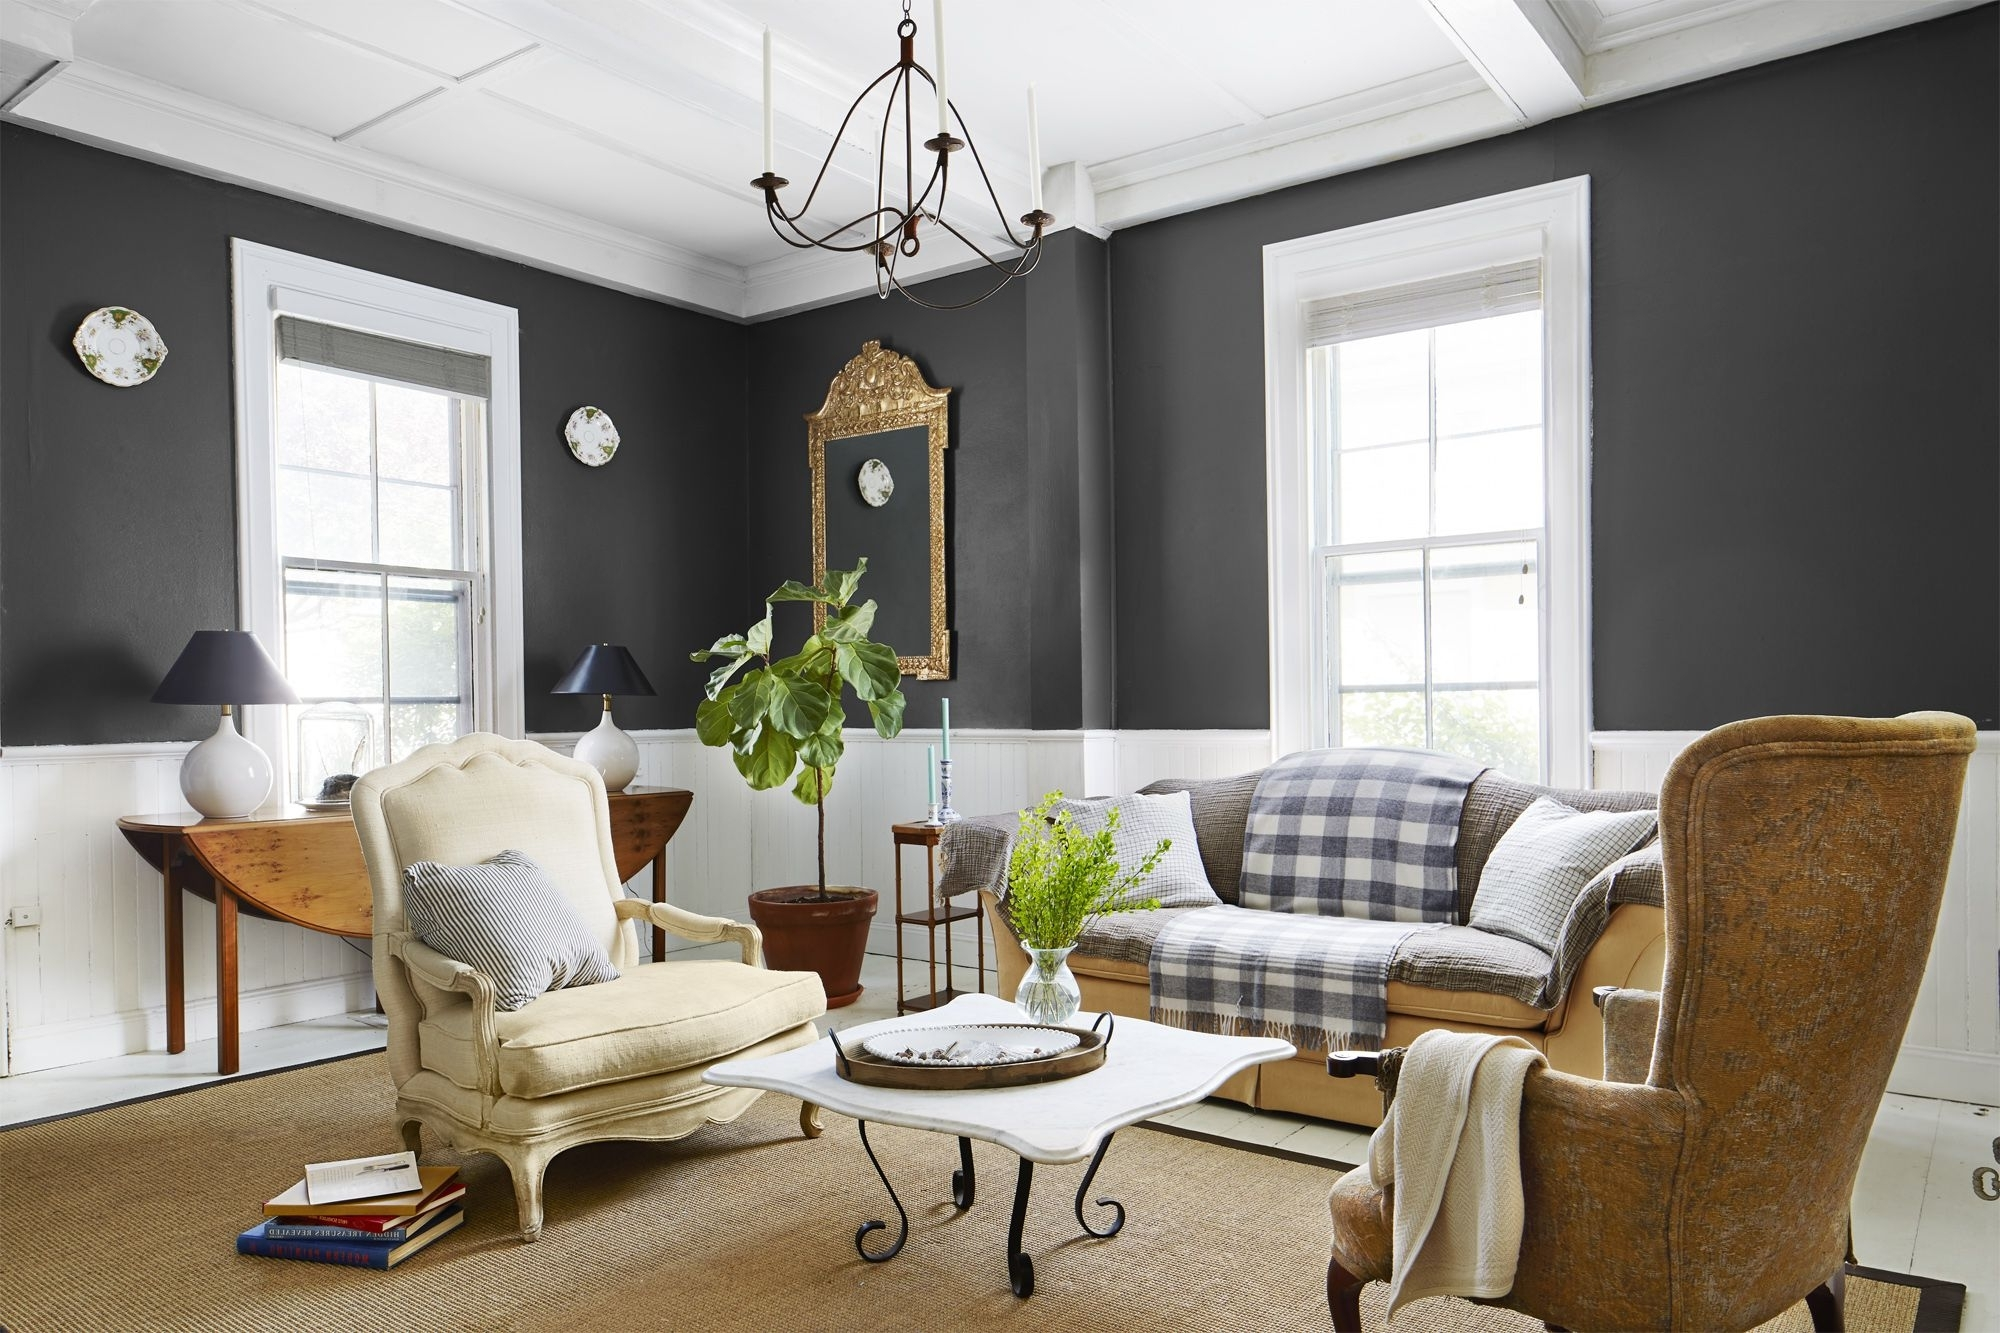 Interior Paint Finishes How To Pick A Paint Finish 40+ Eggshell Paint In Living Room Inspirations